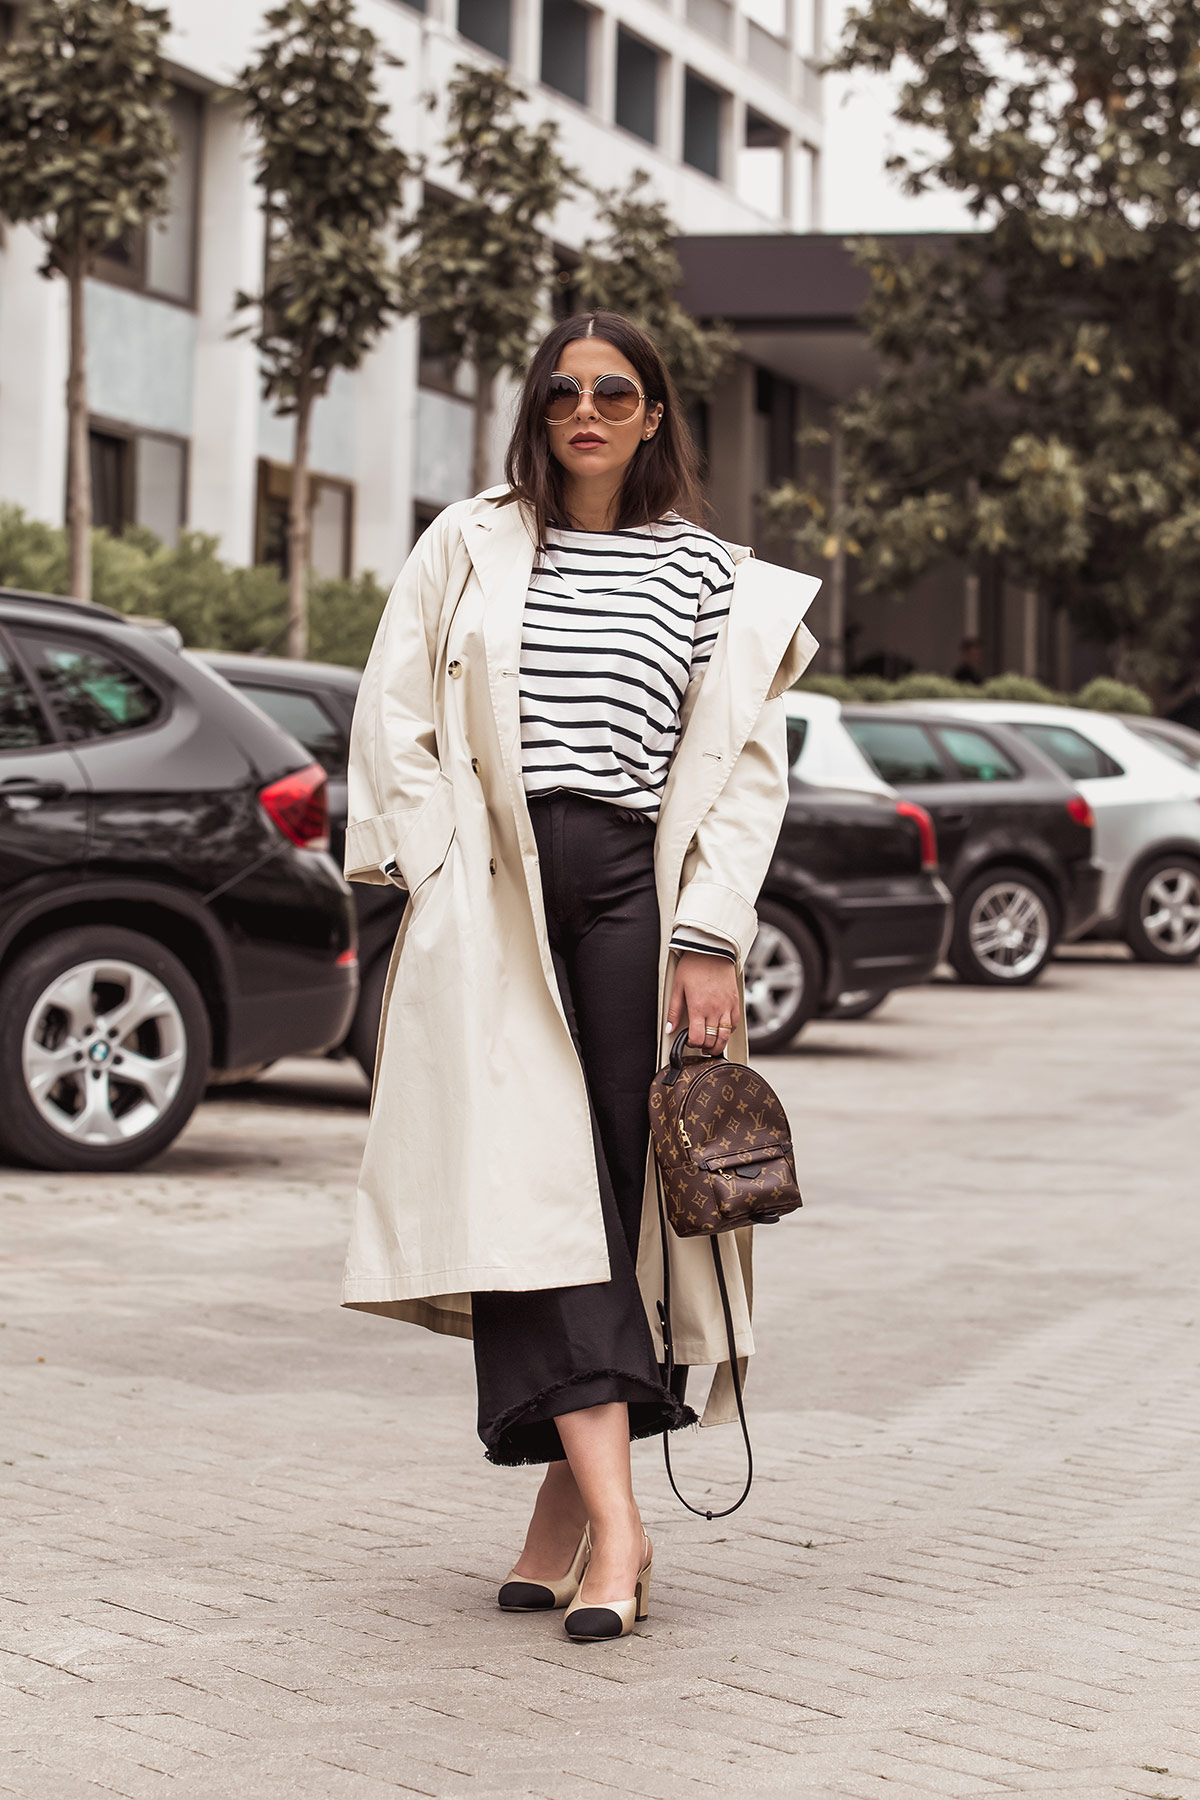 Stella Asteria wearing classic look with beige trench coat, breton top, Louis Vuitton Palm Springs backpack as a cross body, black denim culottes, Chanel slingbacks and Chloe Carlina sunglasses